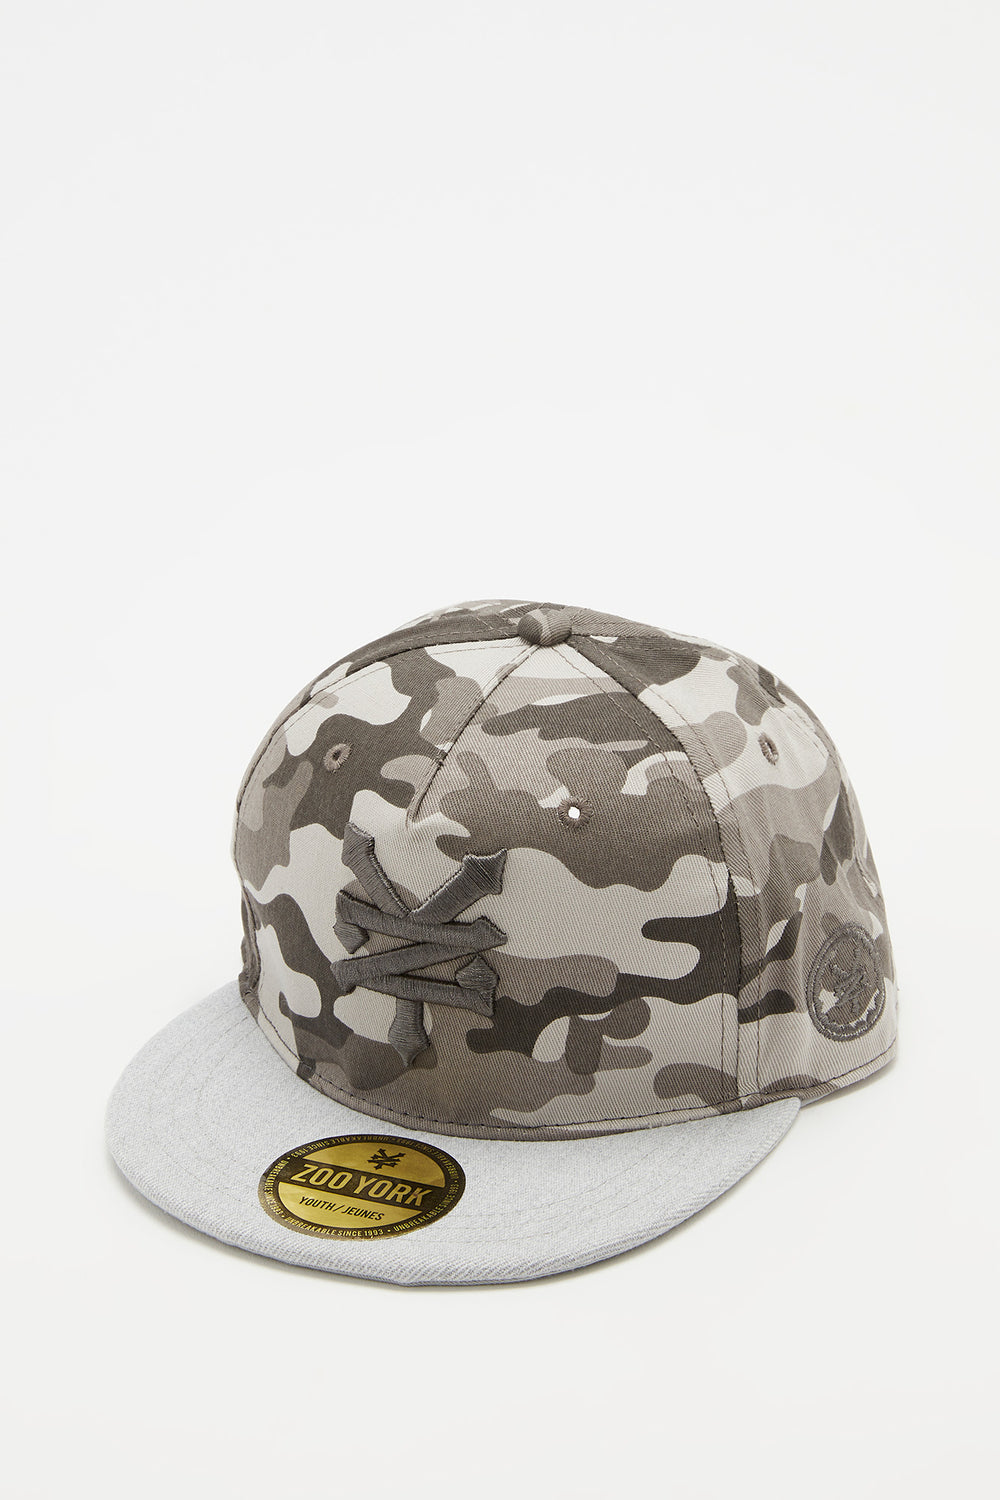 Zoo York Boys Camo Snapback Hat Heather Grey